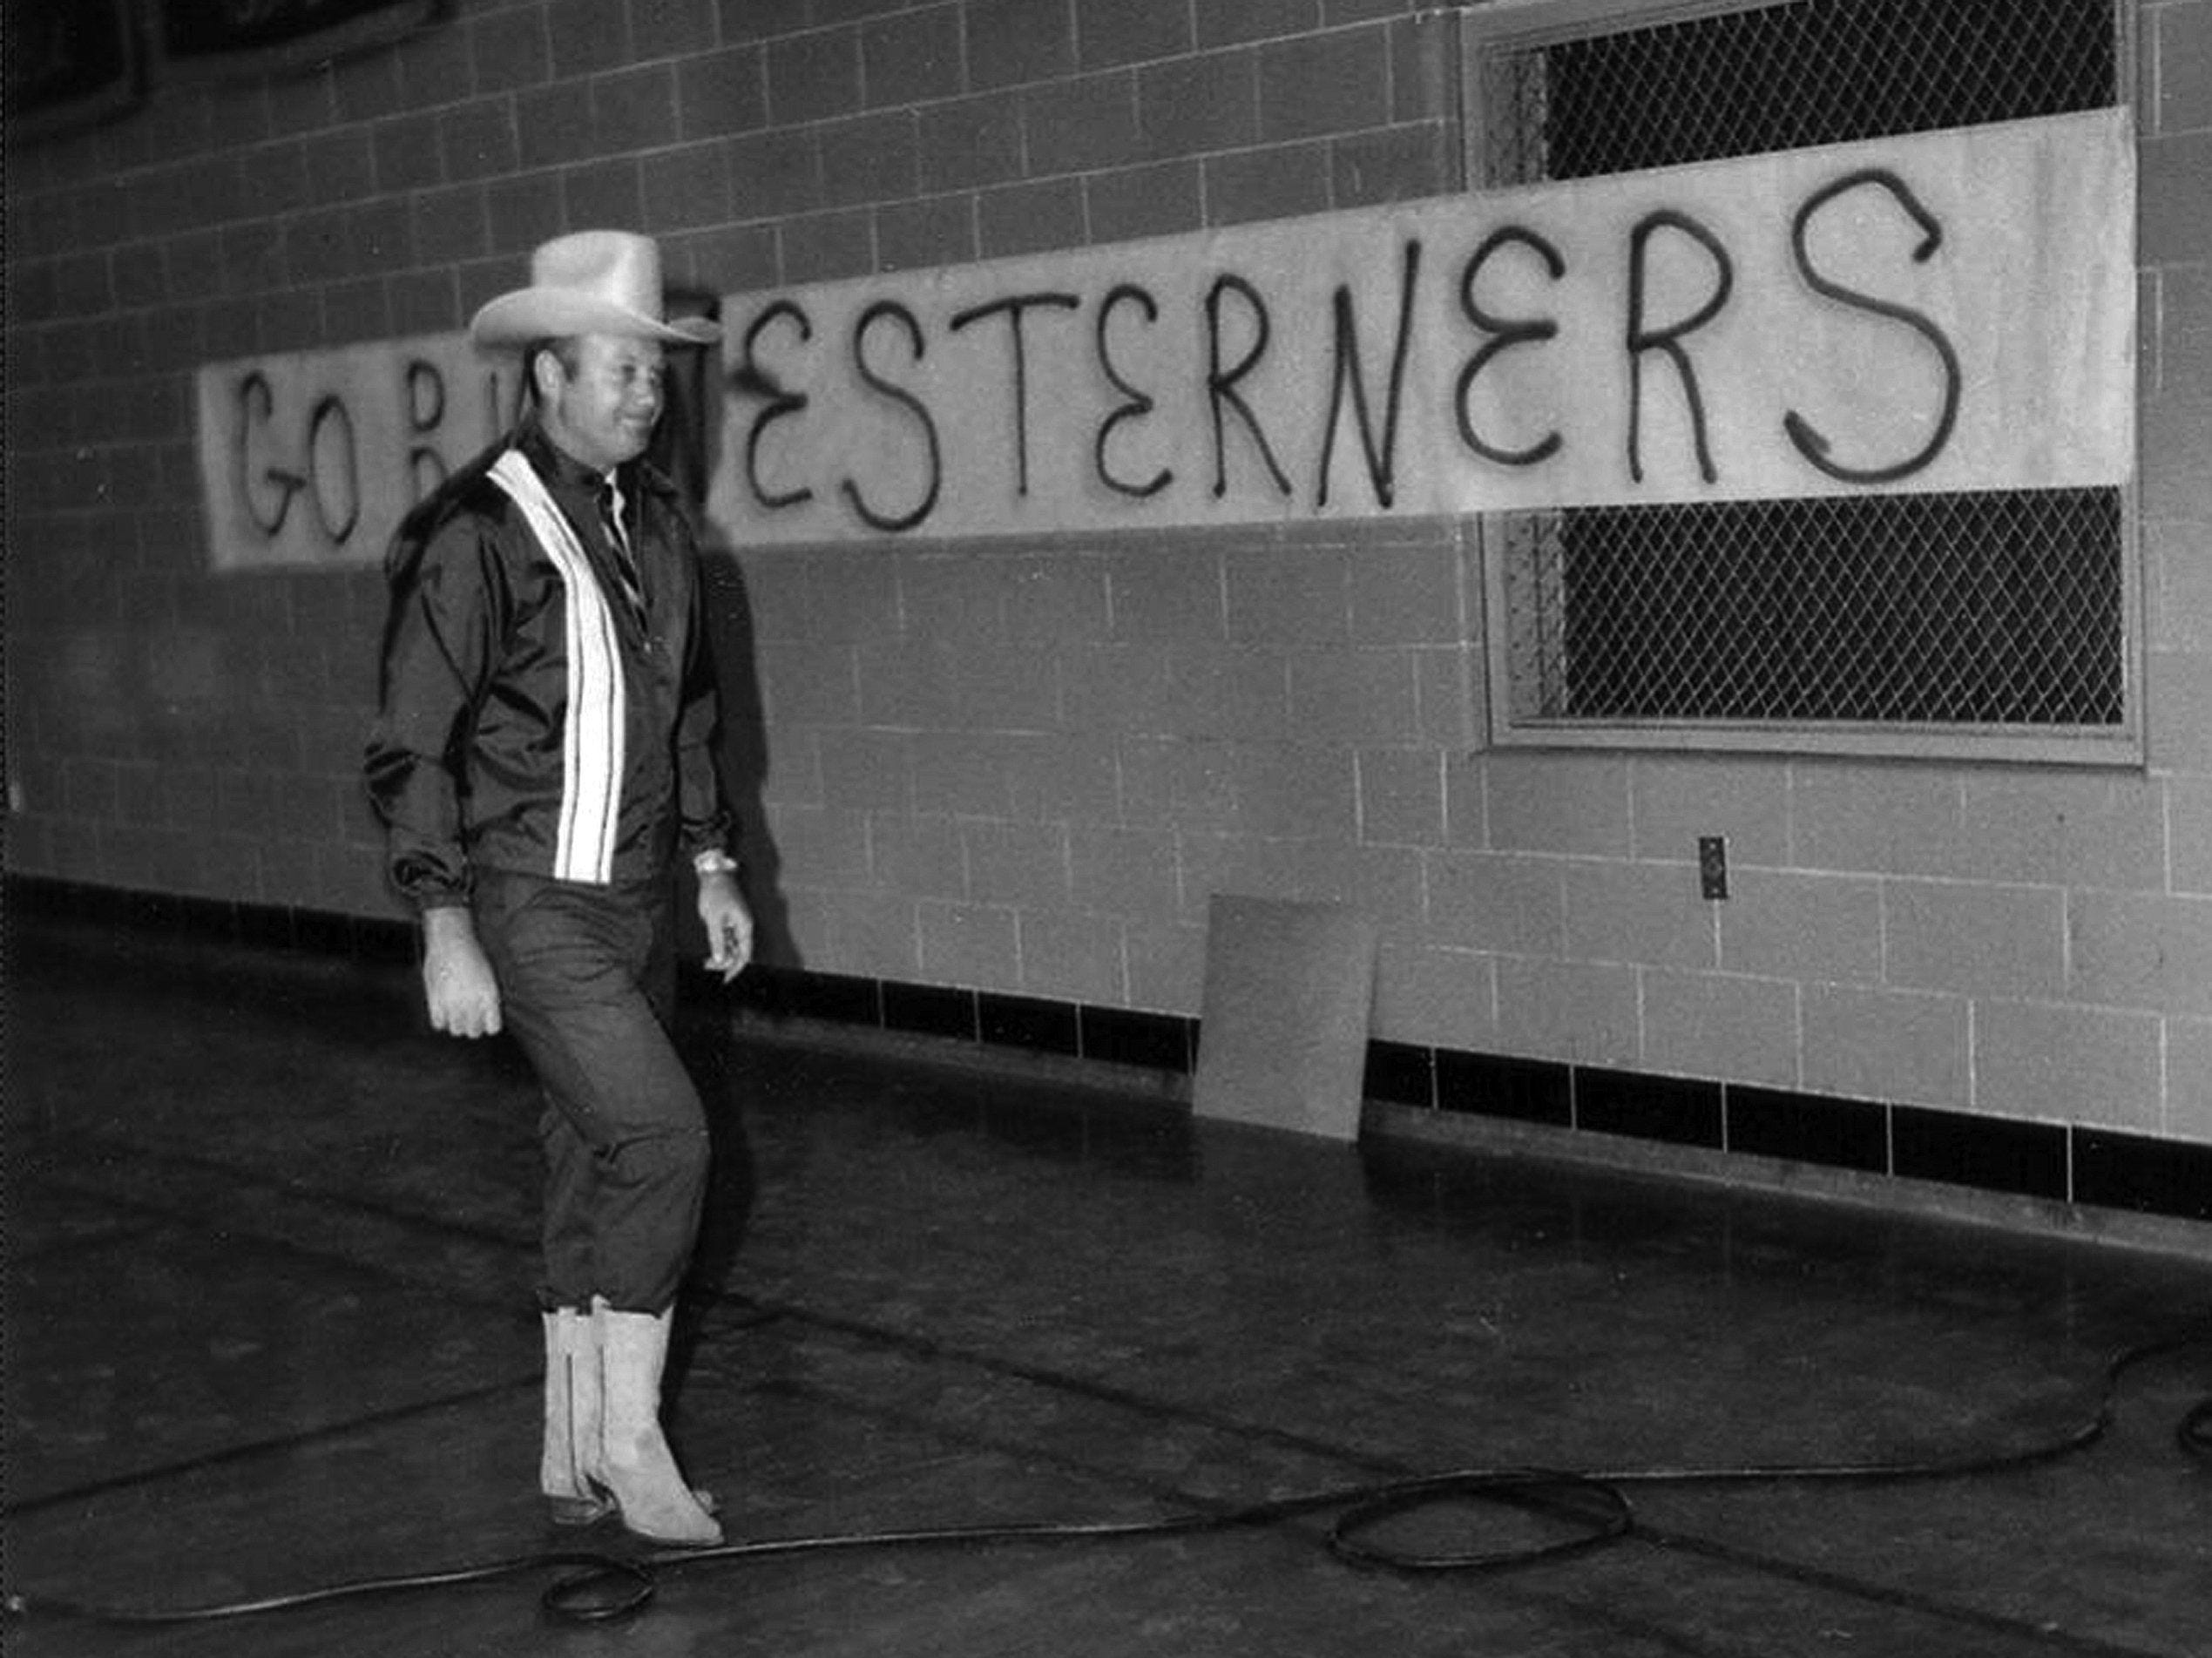 """In September 1970, Pete M. Meadows made an entrance to his first assembly program as the new Principal of Westwood High School.  With the """"Go Westerners"""" banner in the background, Mr. Meadows received a standing ovation from the students as he entered the gymnasium wearing jeans, cowboy hat & boots!  If you'd like to touch base with the former coach and principal, you can contact him at: Pete M. Meadows; 2549 Strathspey Cove; Memphis, TN 38119."""